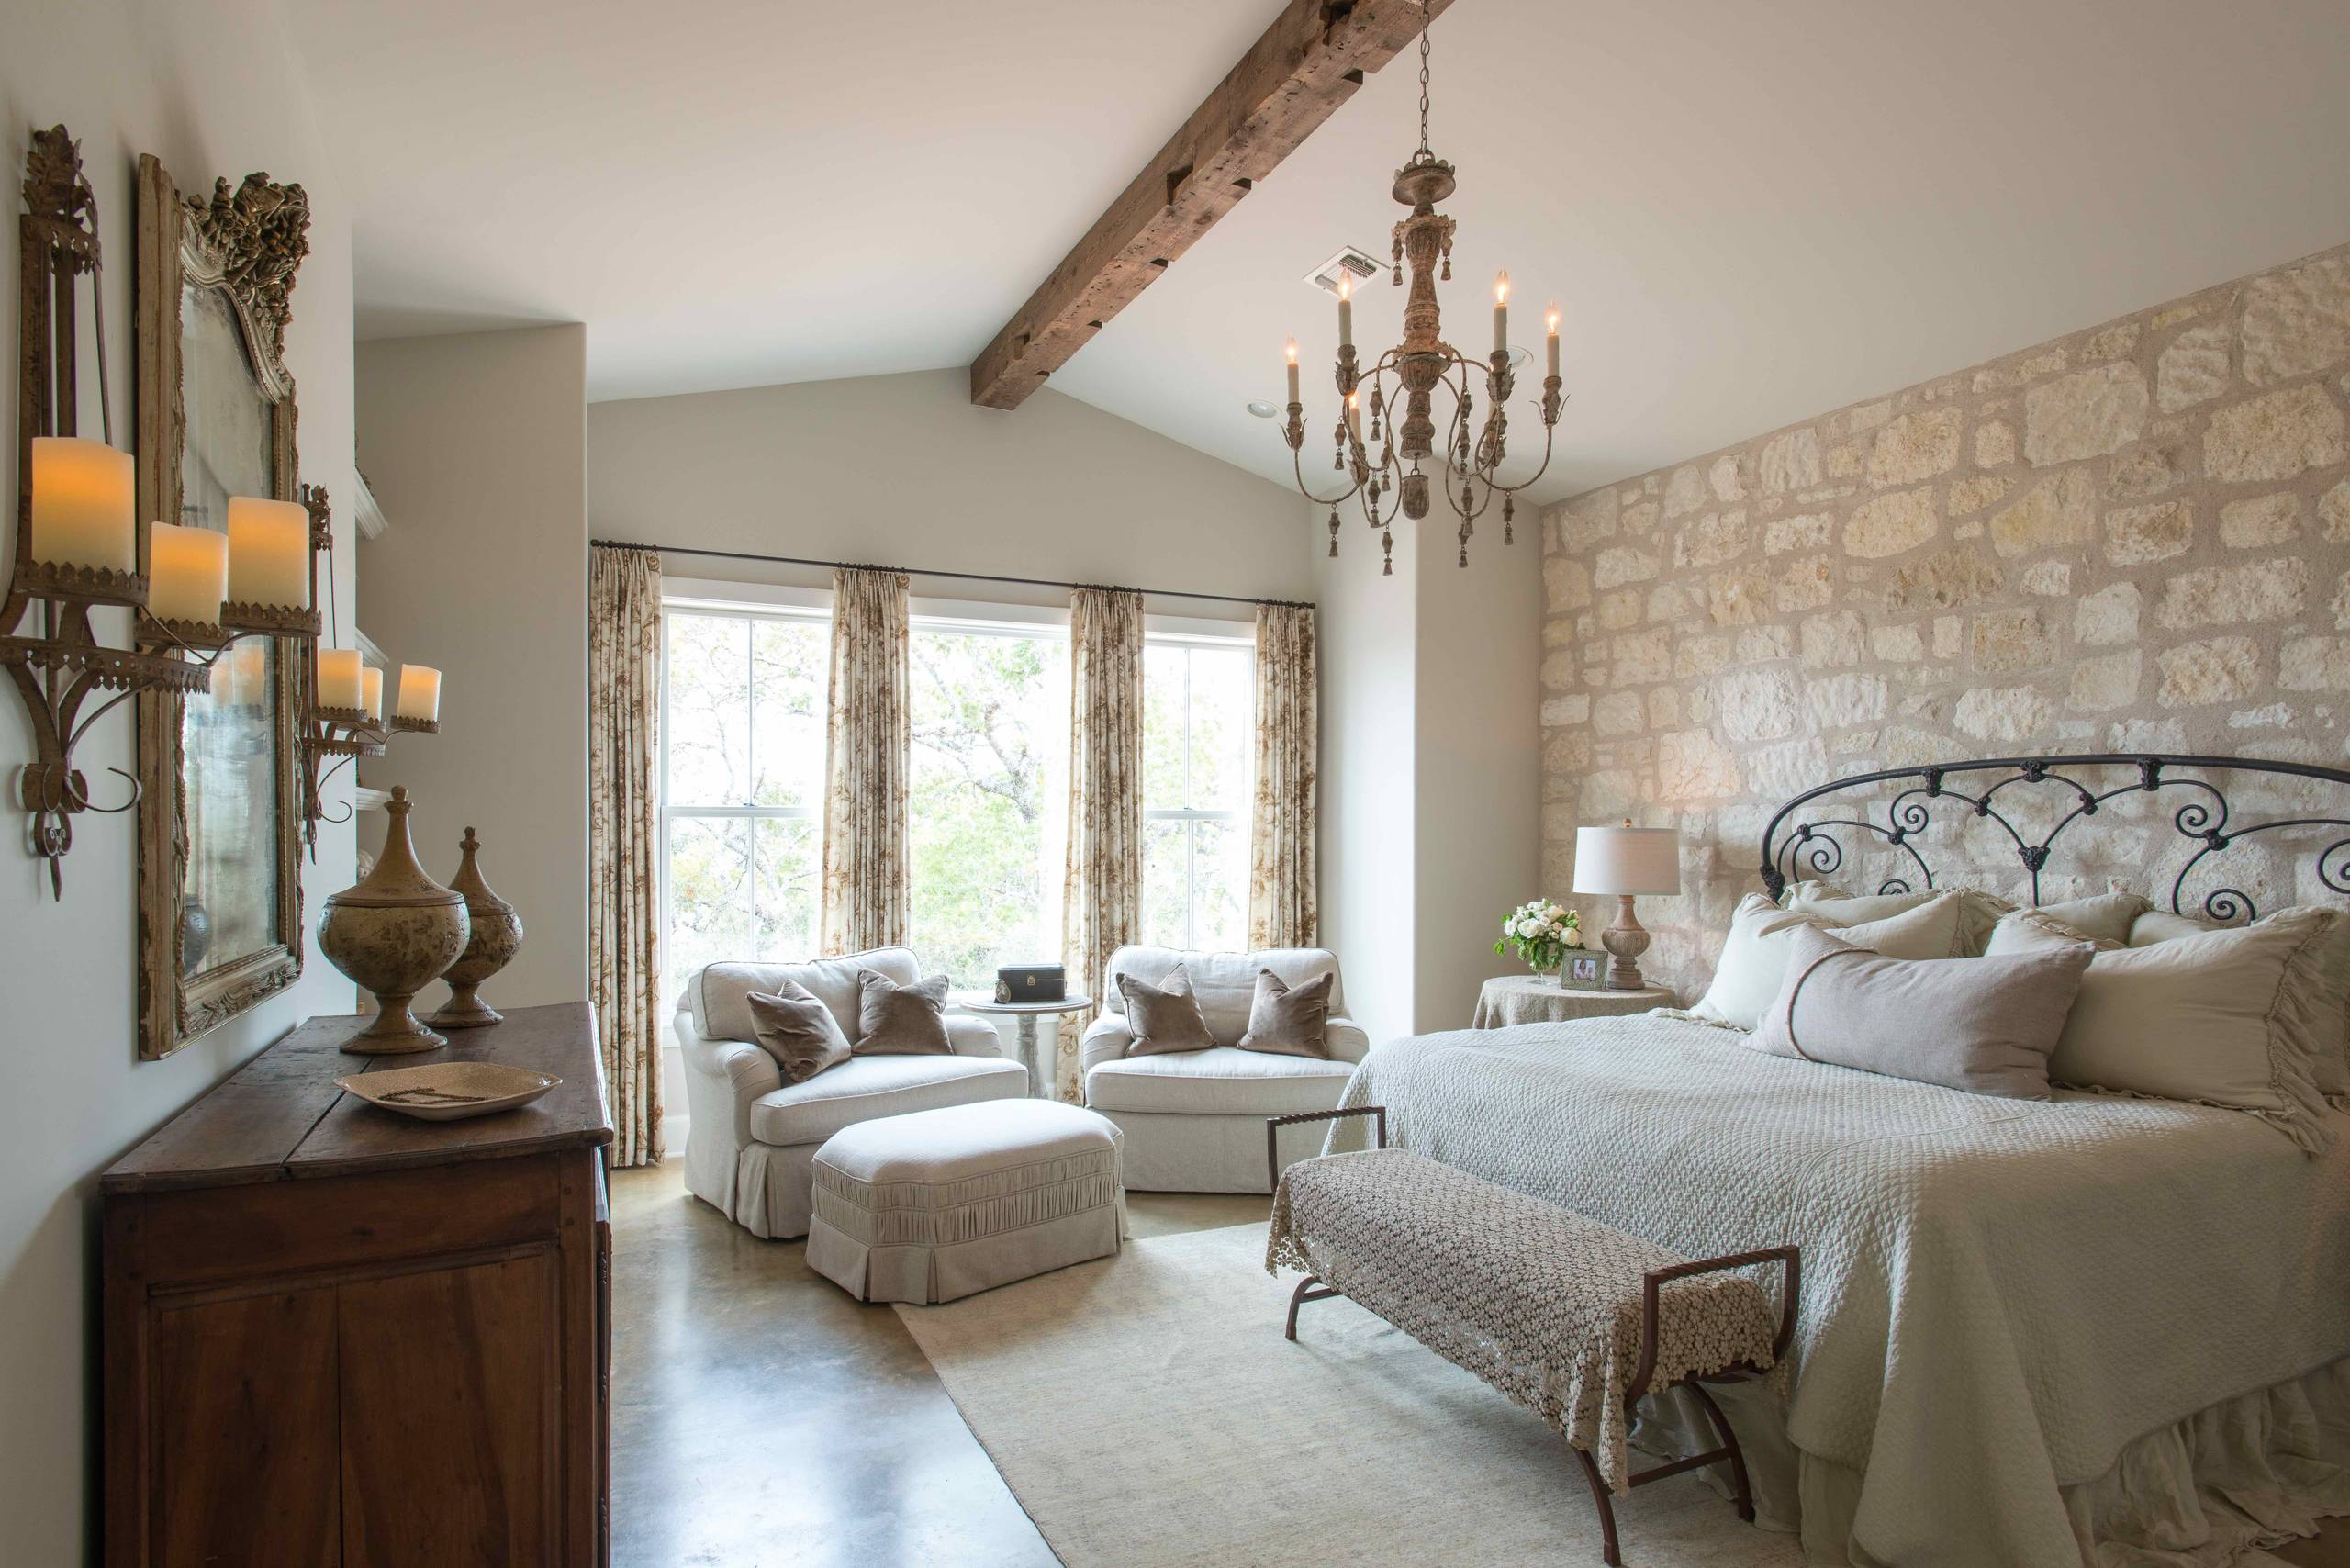 Must See French Country Bedroom Pictures Ideas Before You Renovate 2020 Houzz,Light Green Color Suit Combination